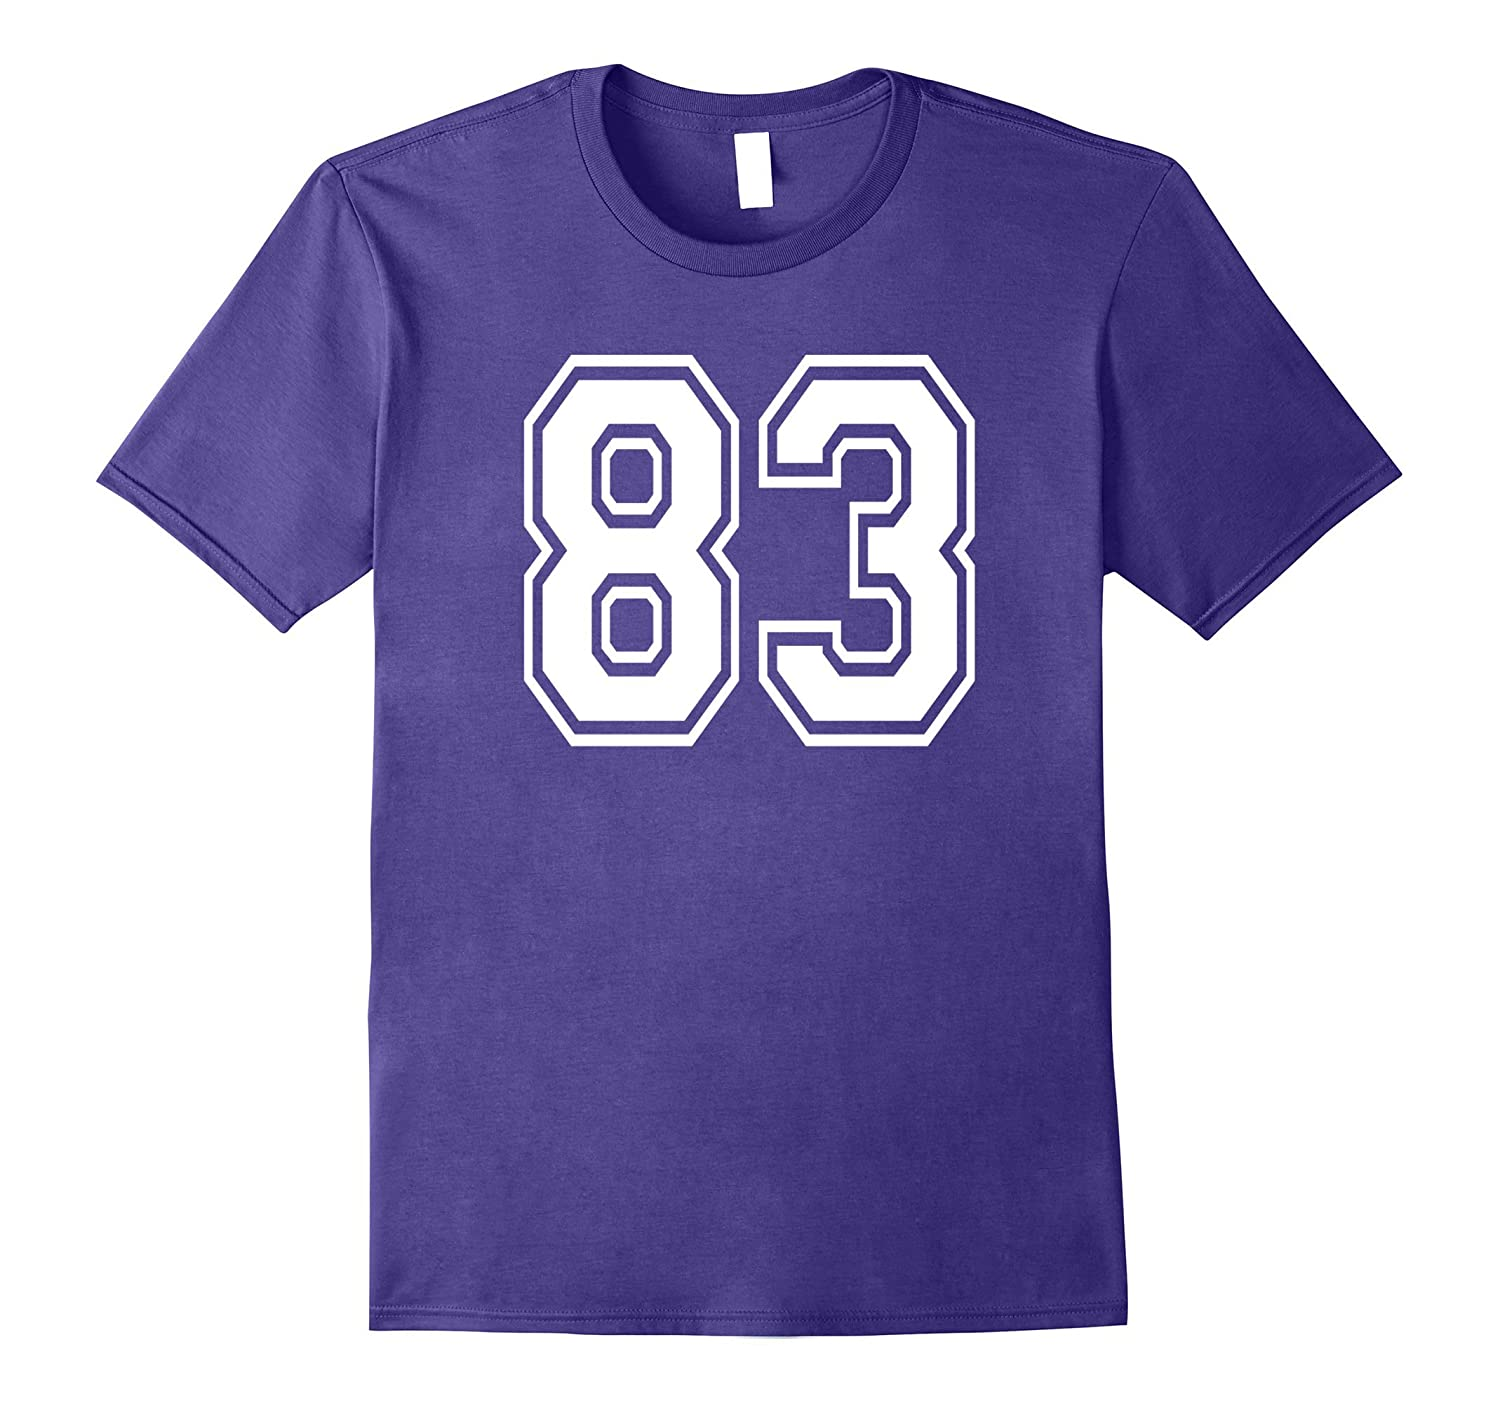 83 Sports Team School Numbers on Front T-Shirt Jersey-Vaci